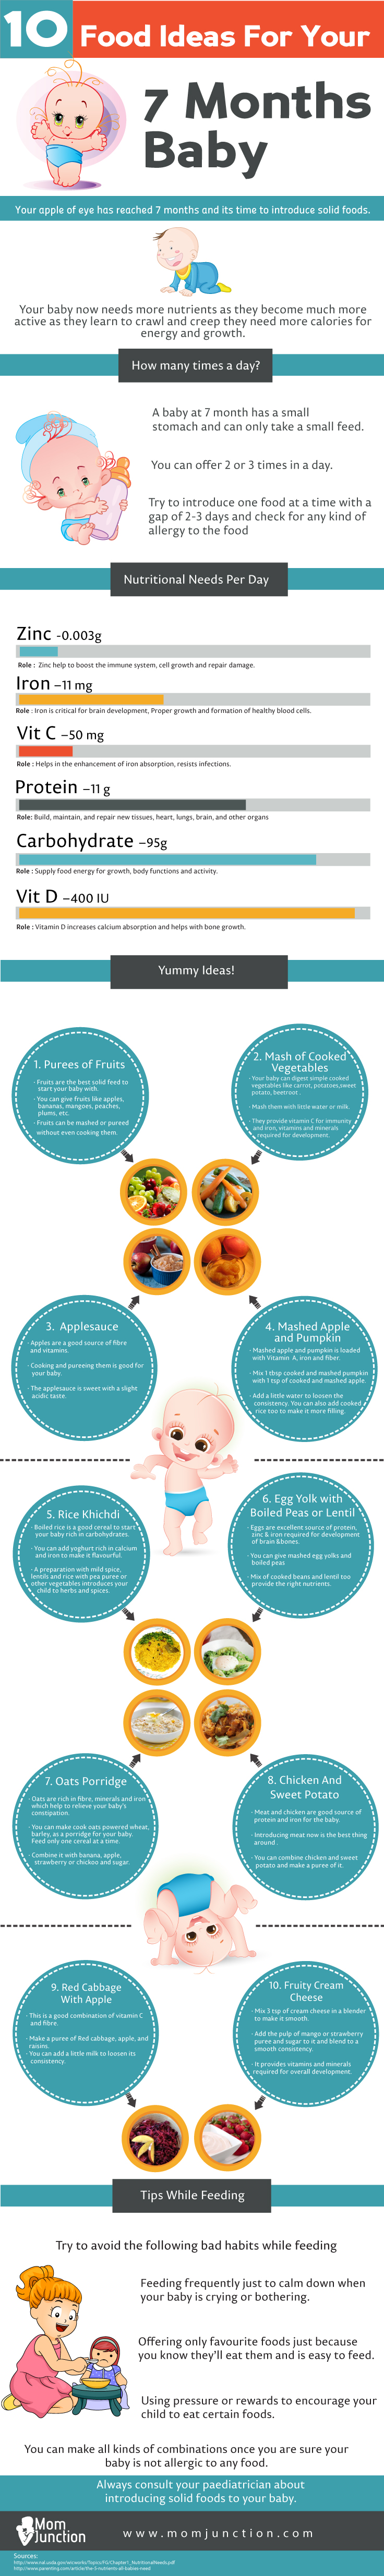 Top 10 Food Ideas For Your 7 Months Baby